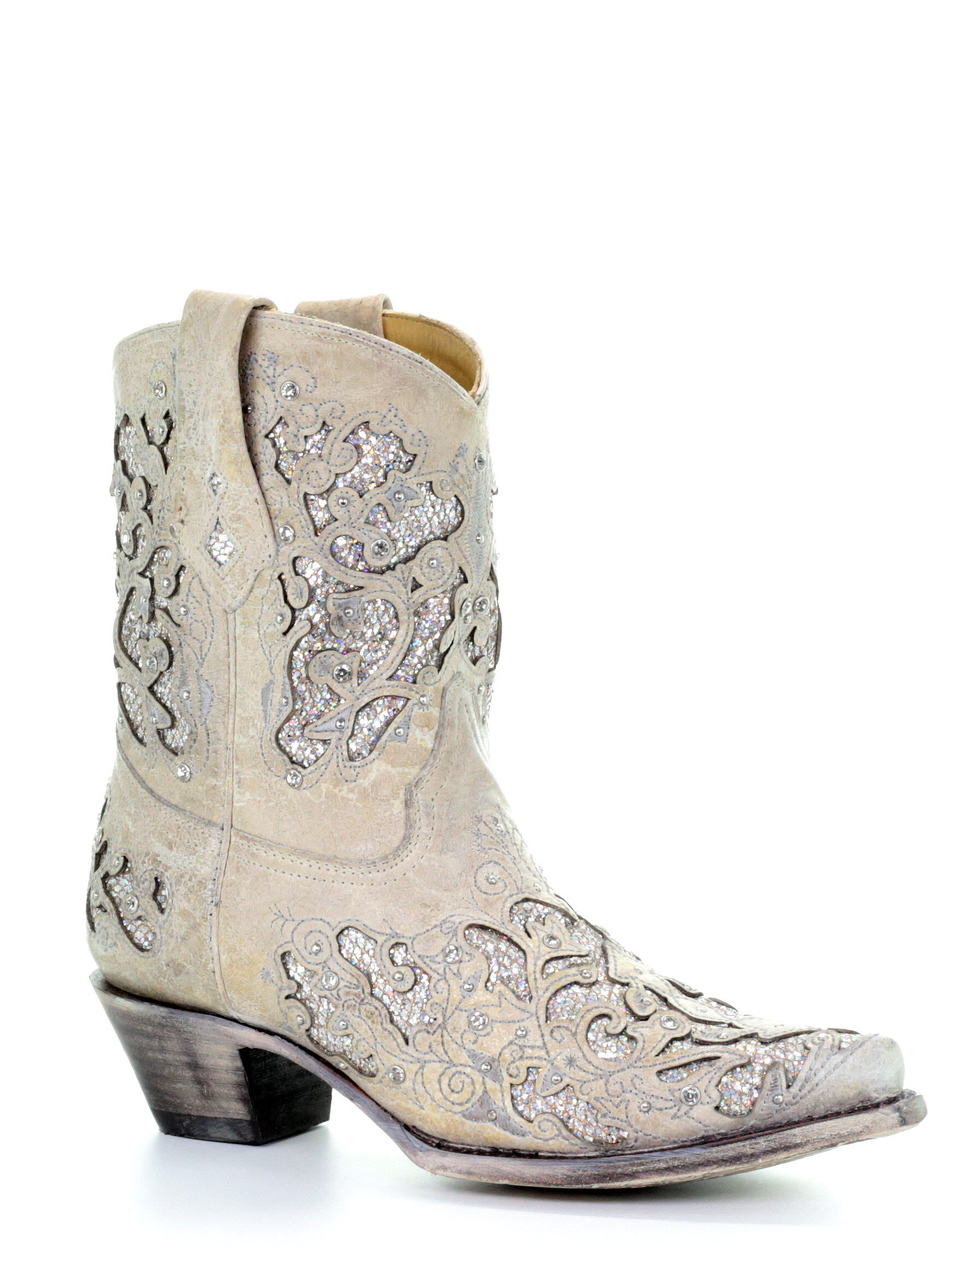 5a76a098f42 Corral White Glitter Inlay and Crystals Ankle Boot A3550